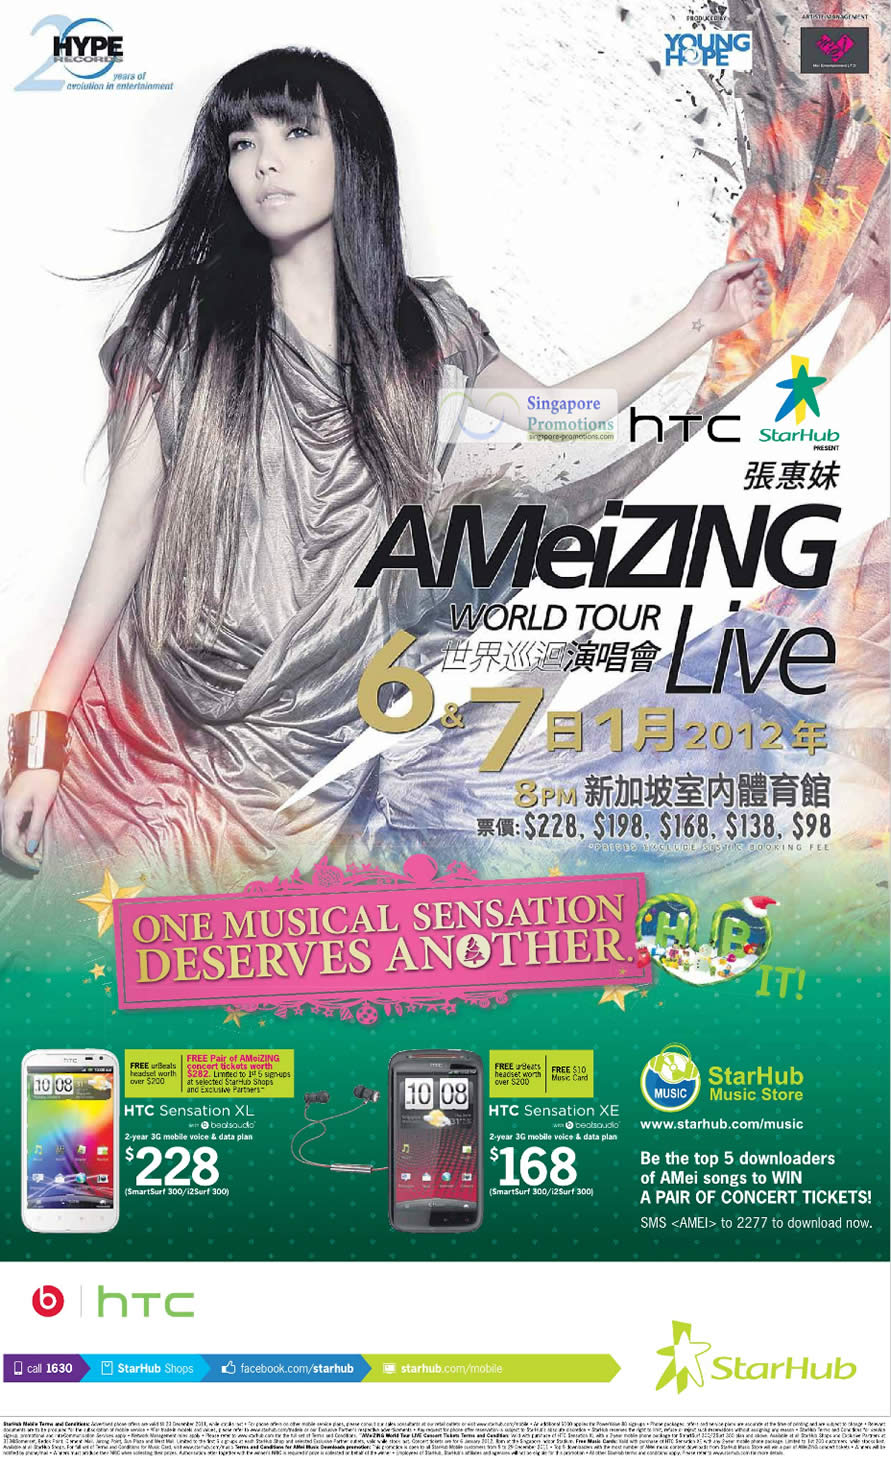 HTC Sensation XL, HTC Sensation XE, AMeizing World Tour Live Concert